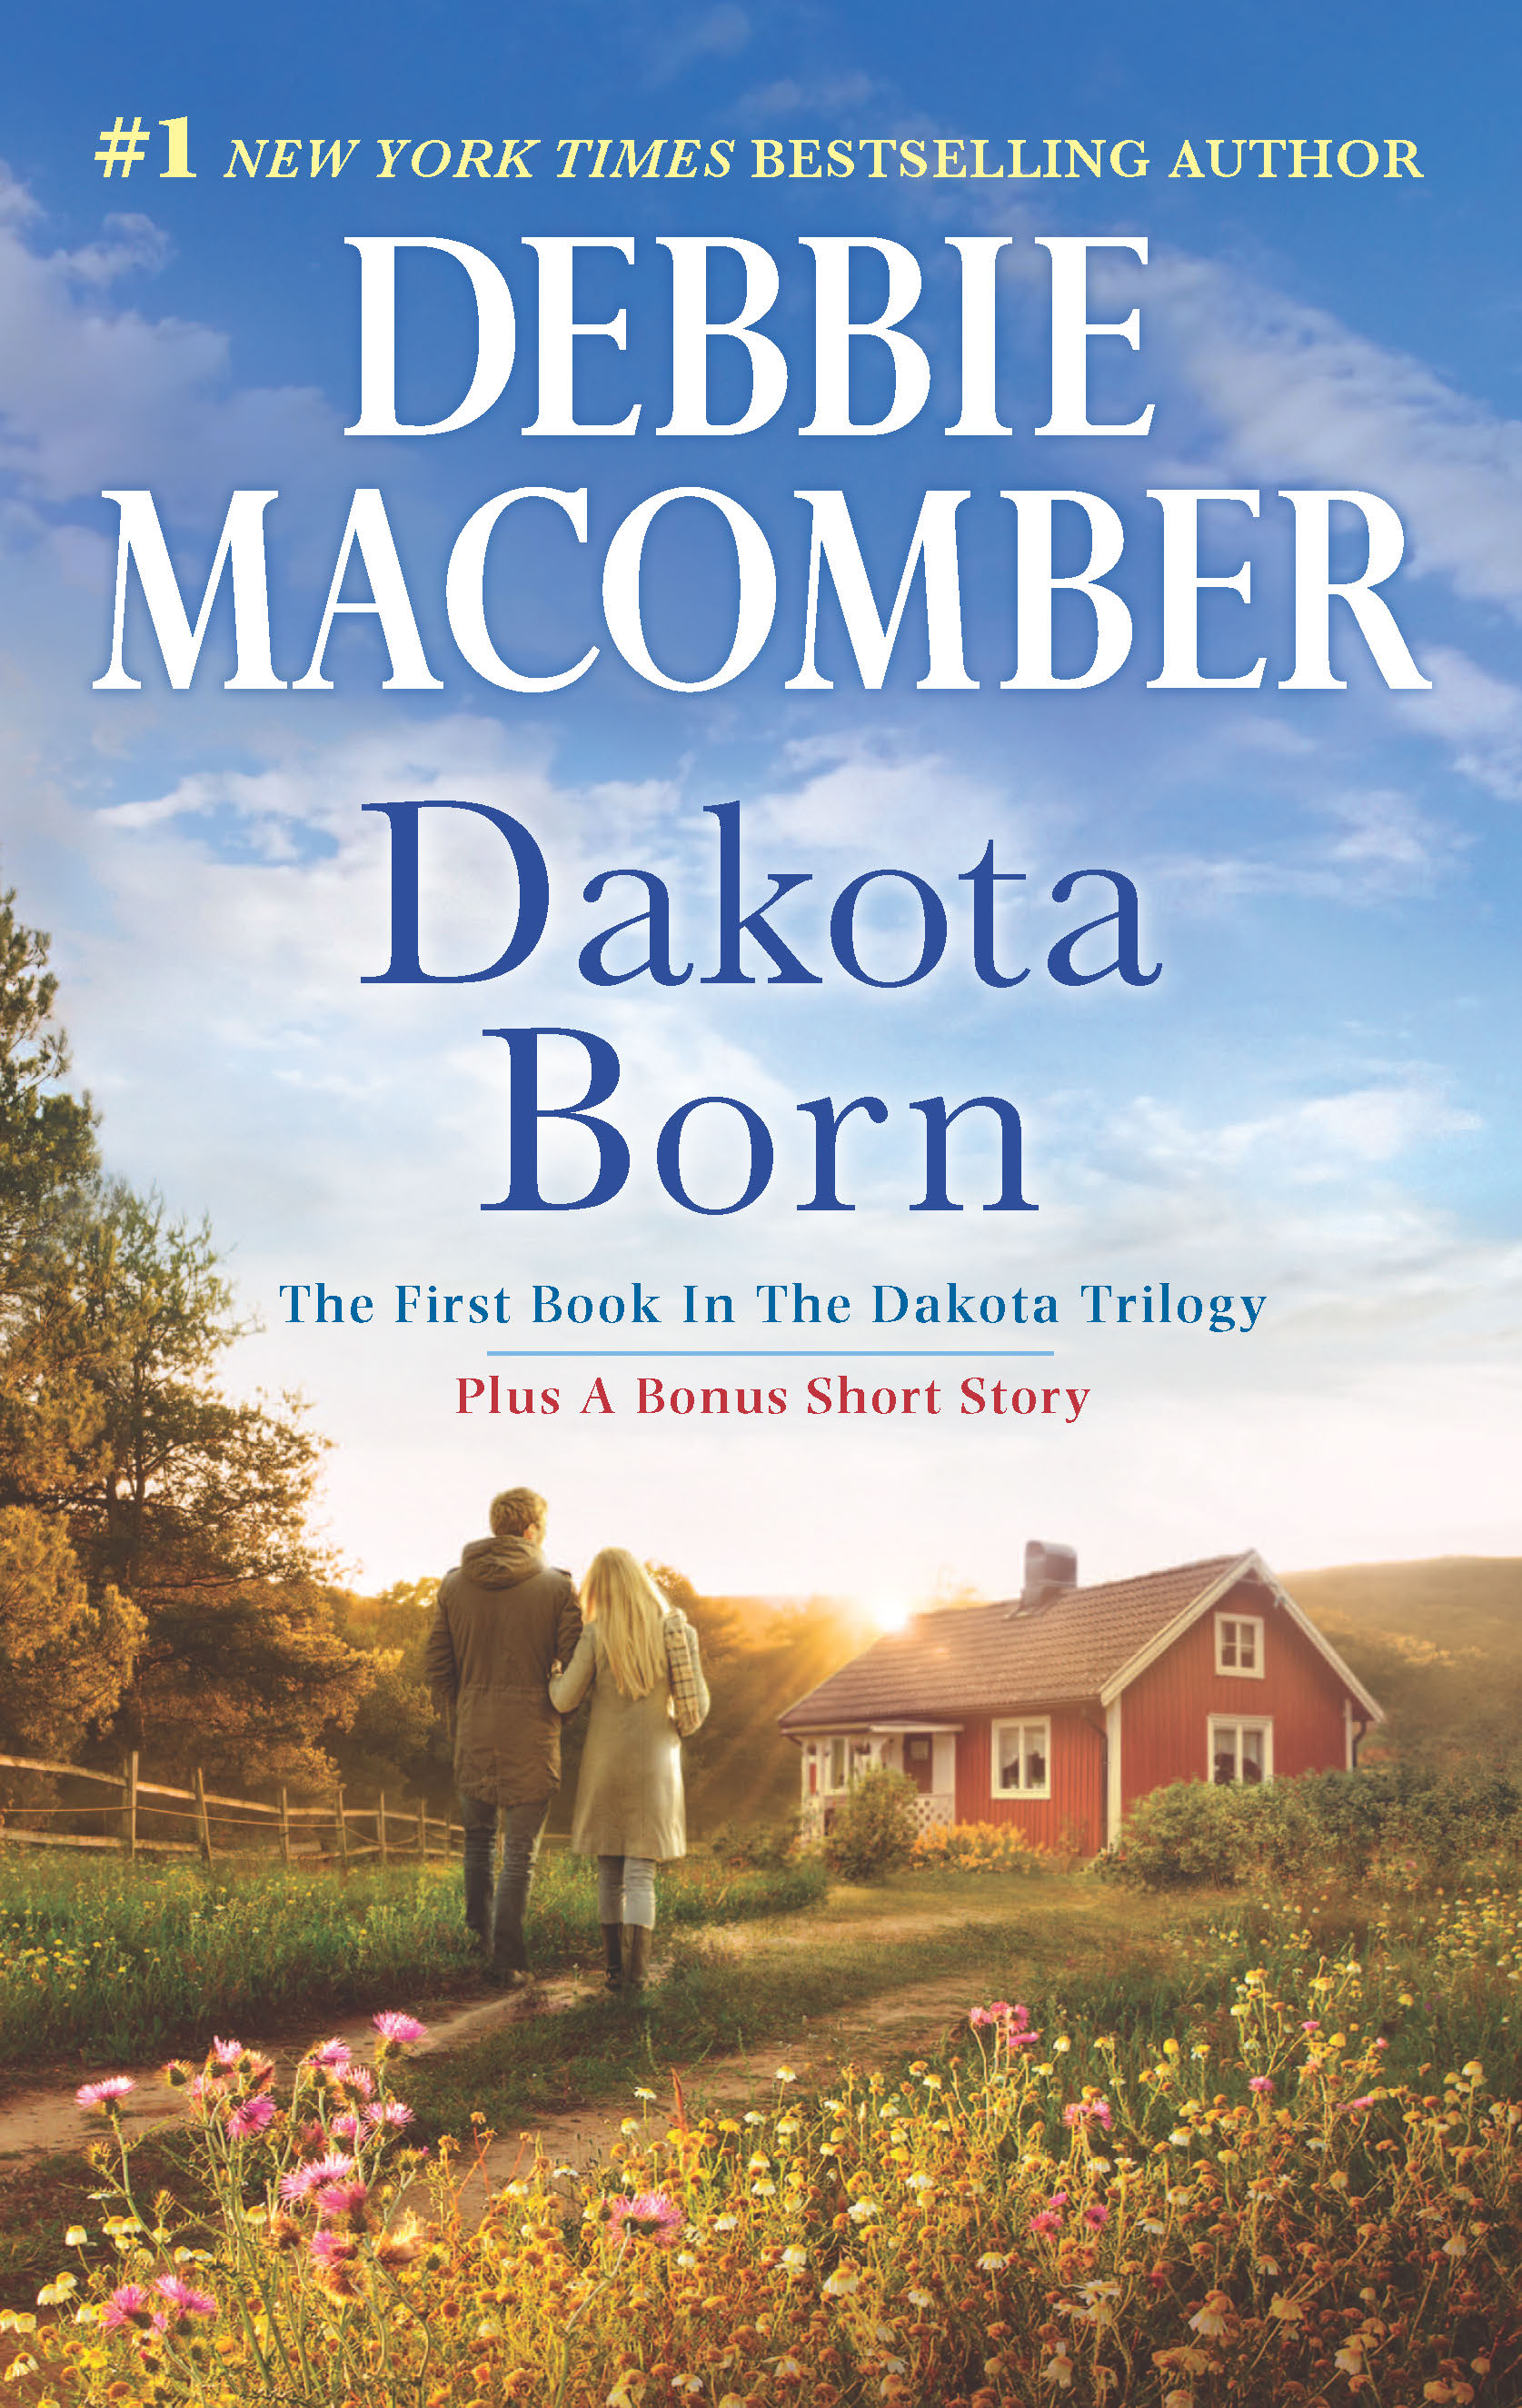 Dakota Born by Debbie Macomber